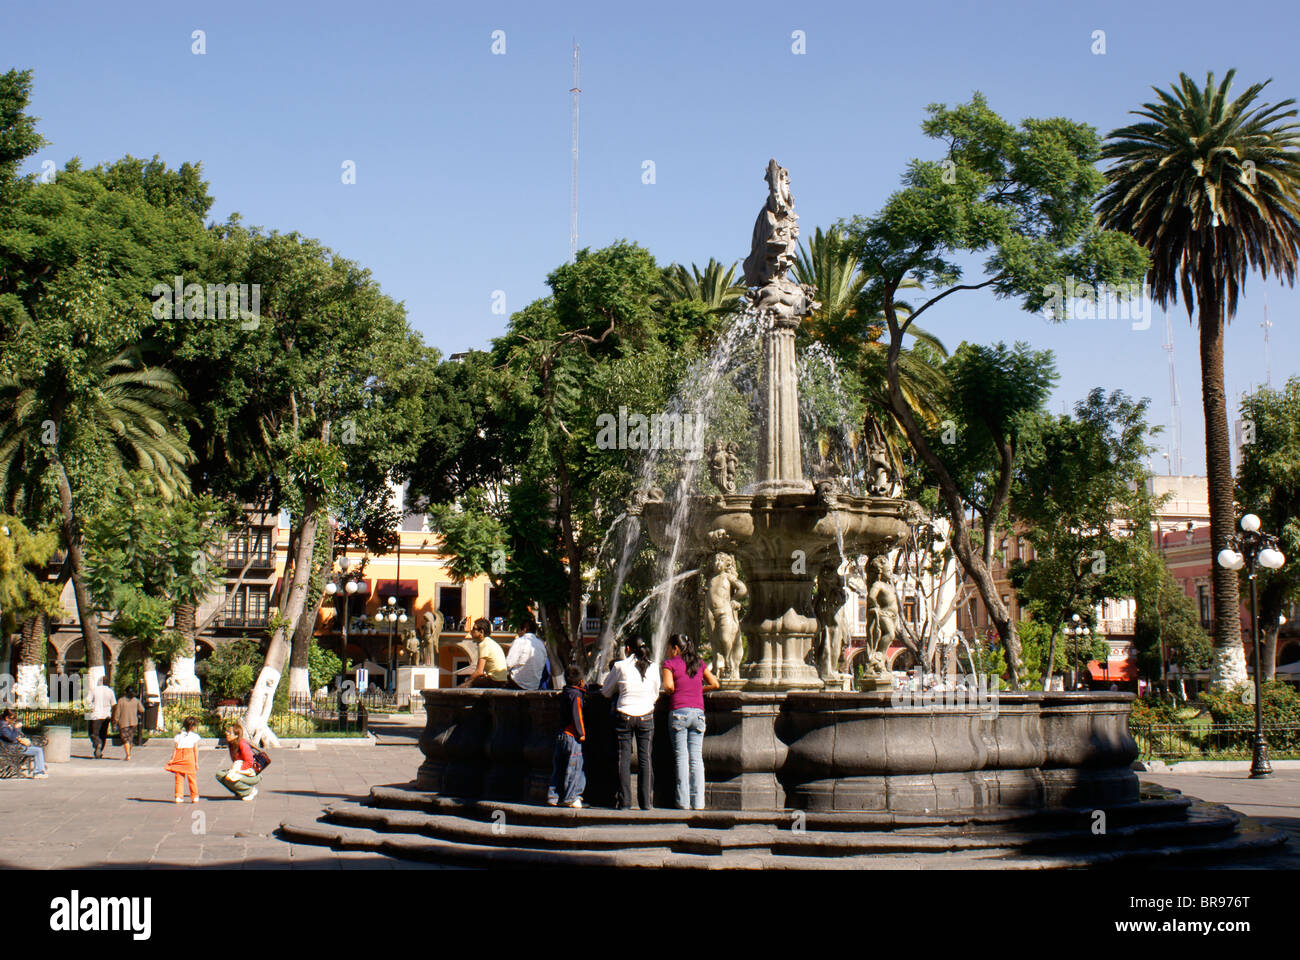 Fountain and people in the zocalo, city of Puebla, Mexico. The historical center of Puebla is a UNESCO World Heritage - Stock Image